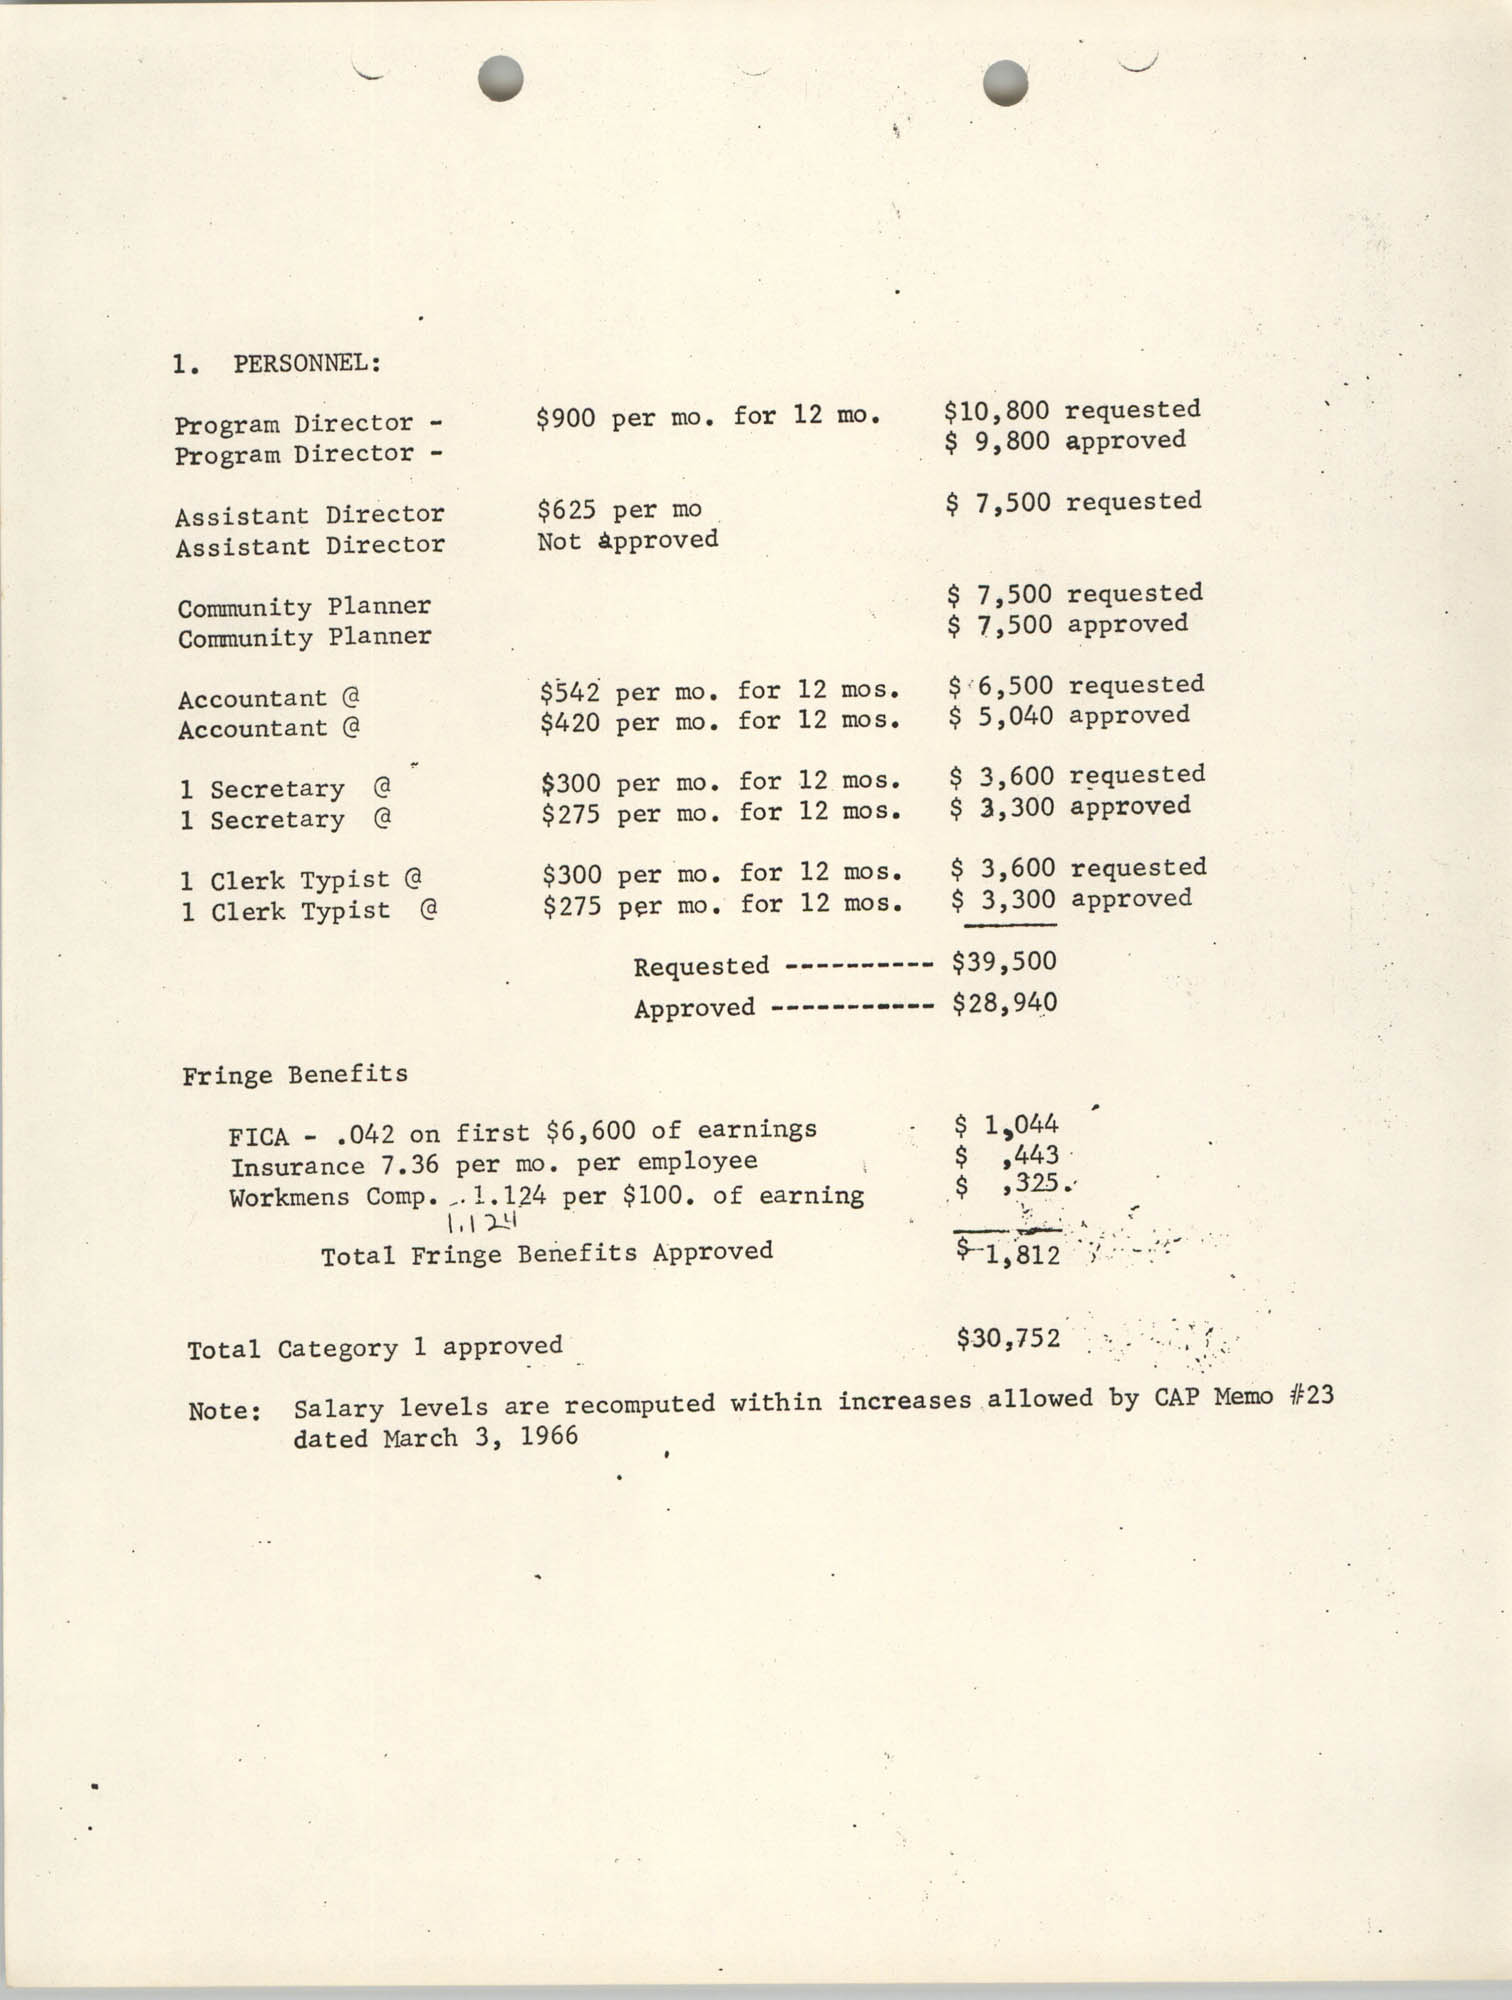 CAP Grant Materials, July 31, 1967, Page 2